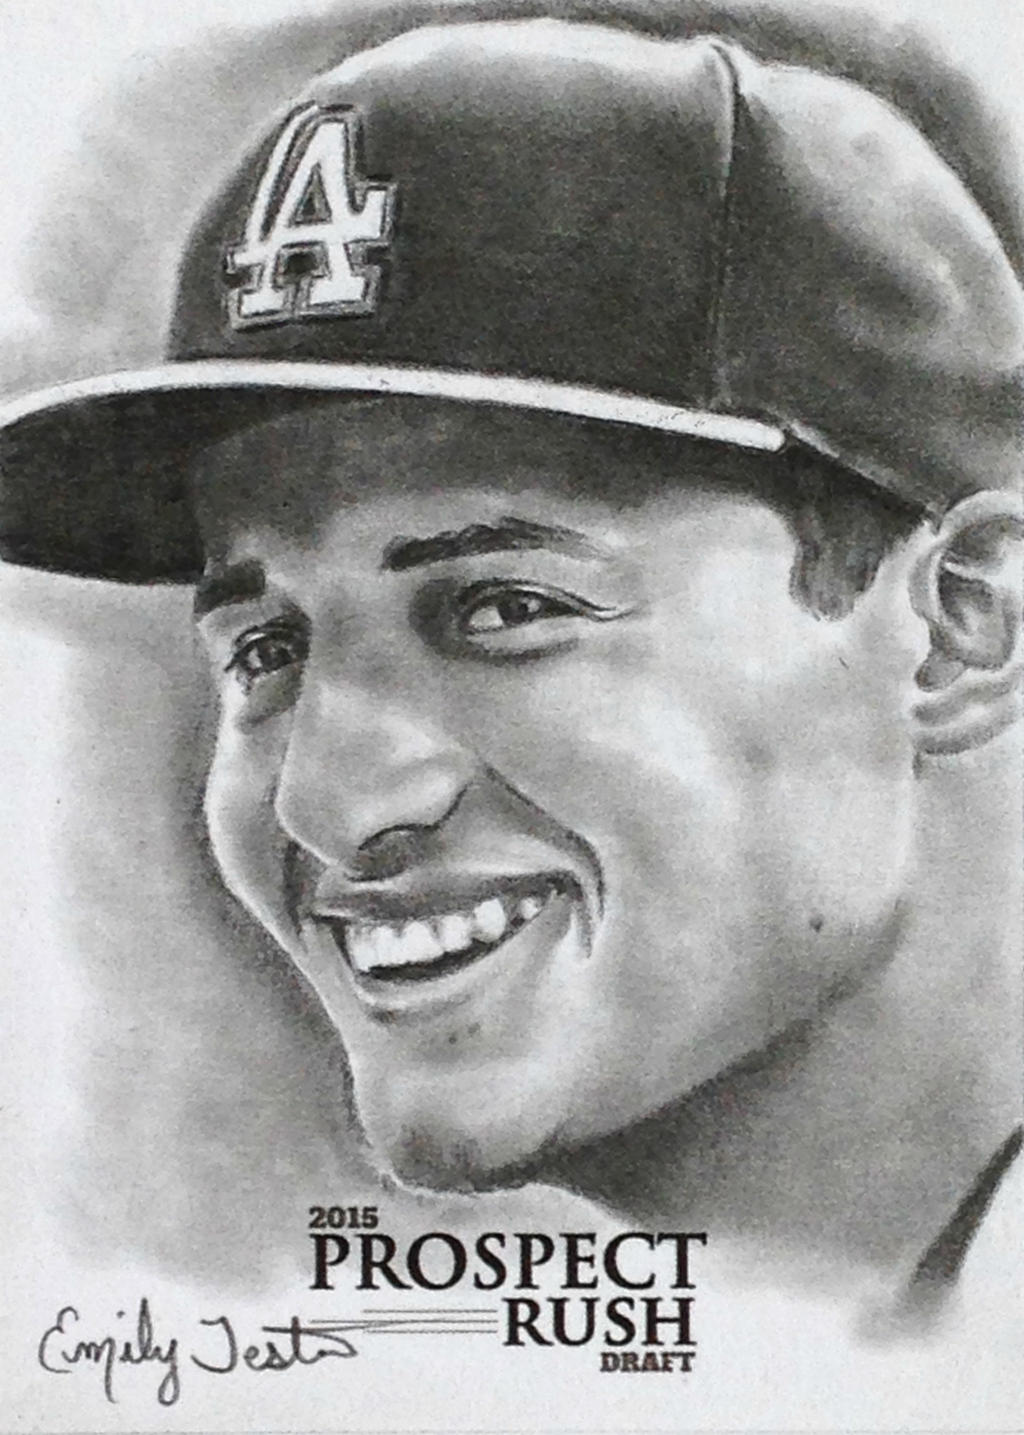 Iphone wallpaper los angeles - Corey Seager Los Angeles Dodgers Sketch Card By